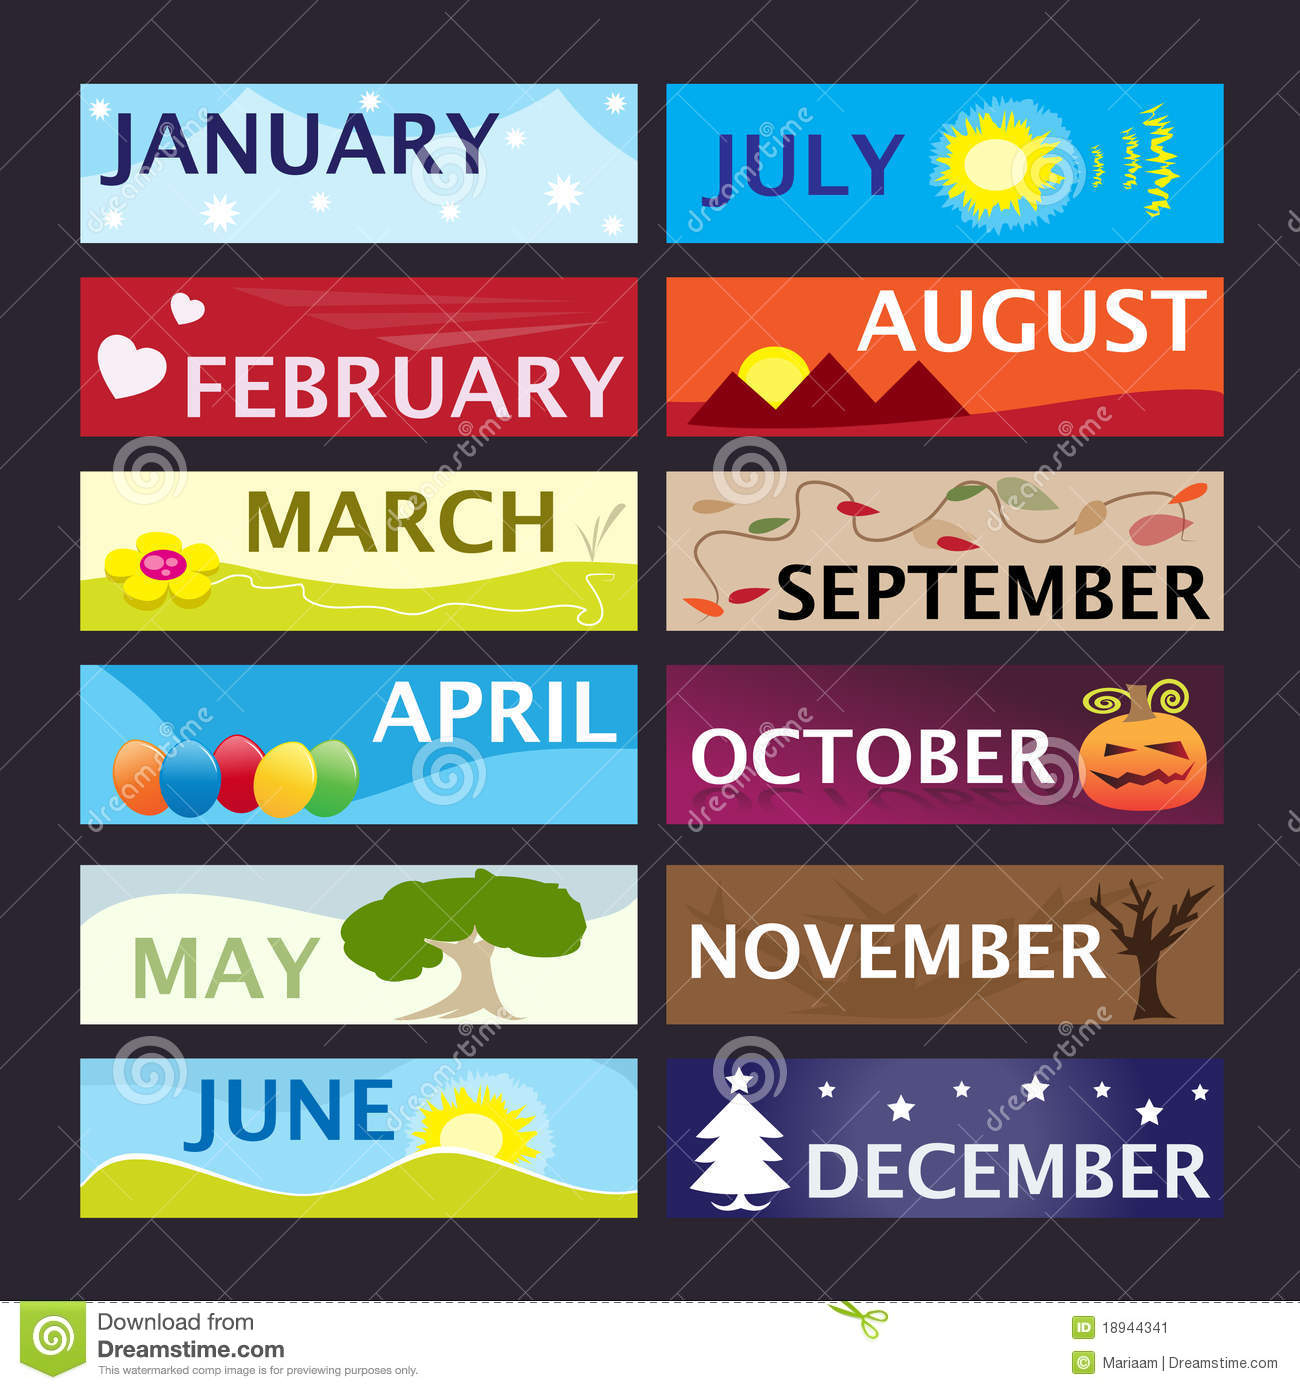 Clipart month of the year clipart freeuse Calendar month clipart - ClipartFox clipart freeuse